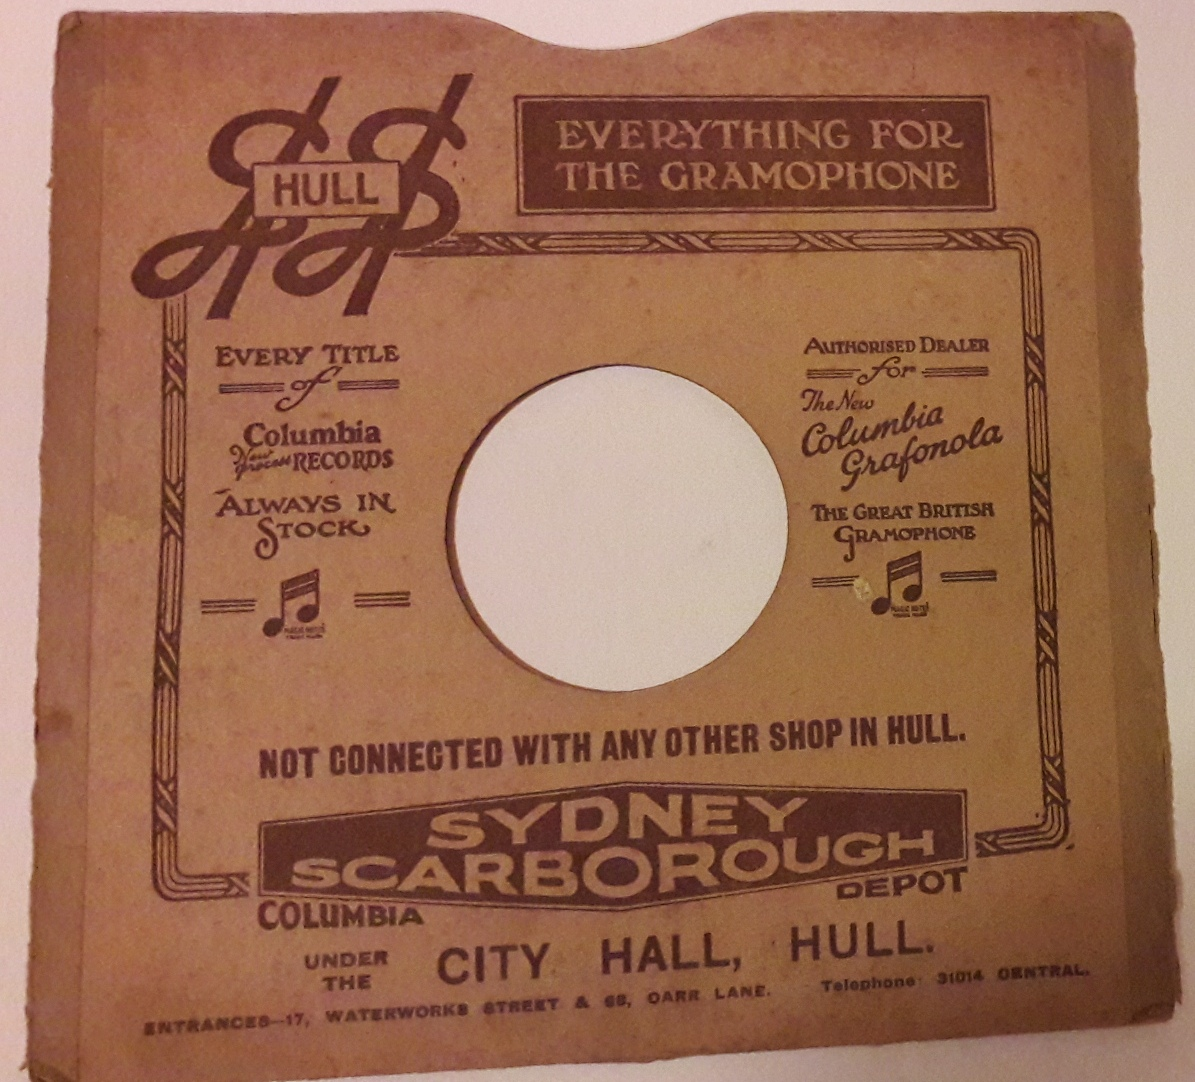 Scarborough Sydney. Gramophone Store . City Hall Hull